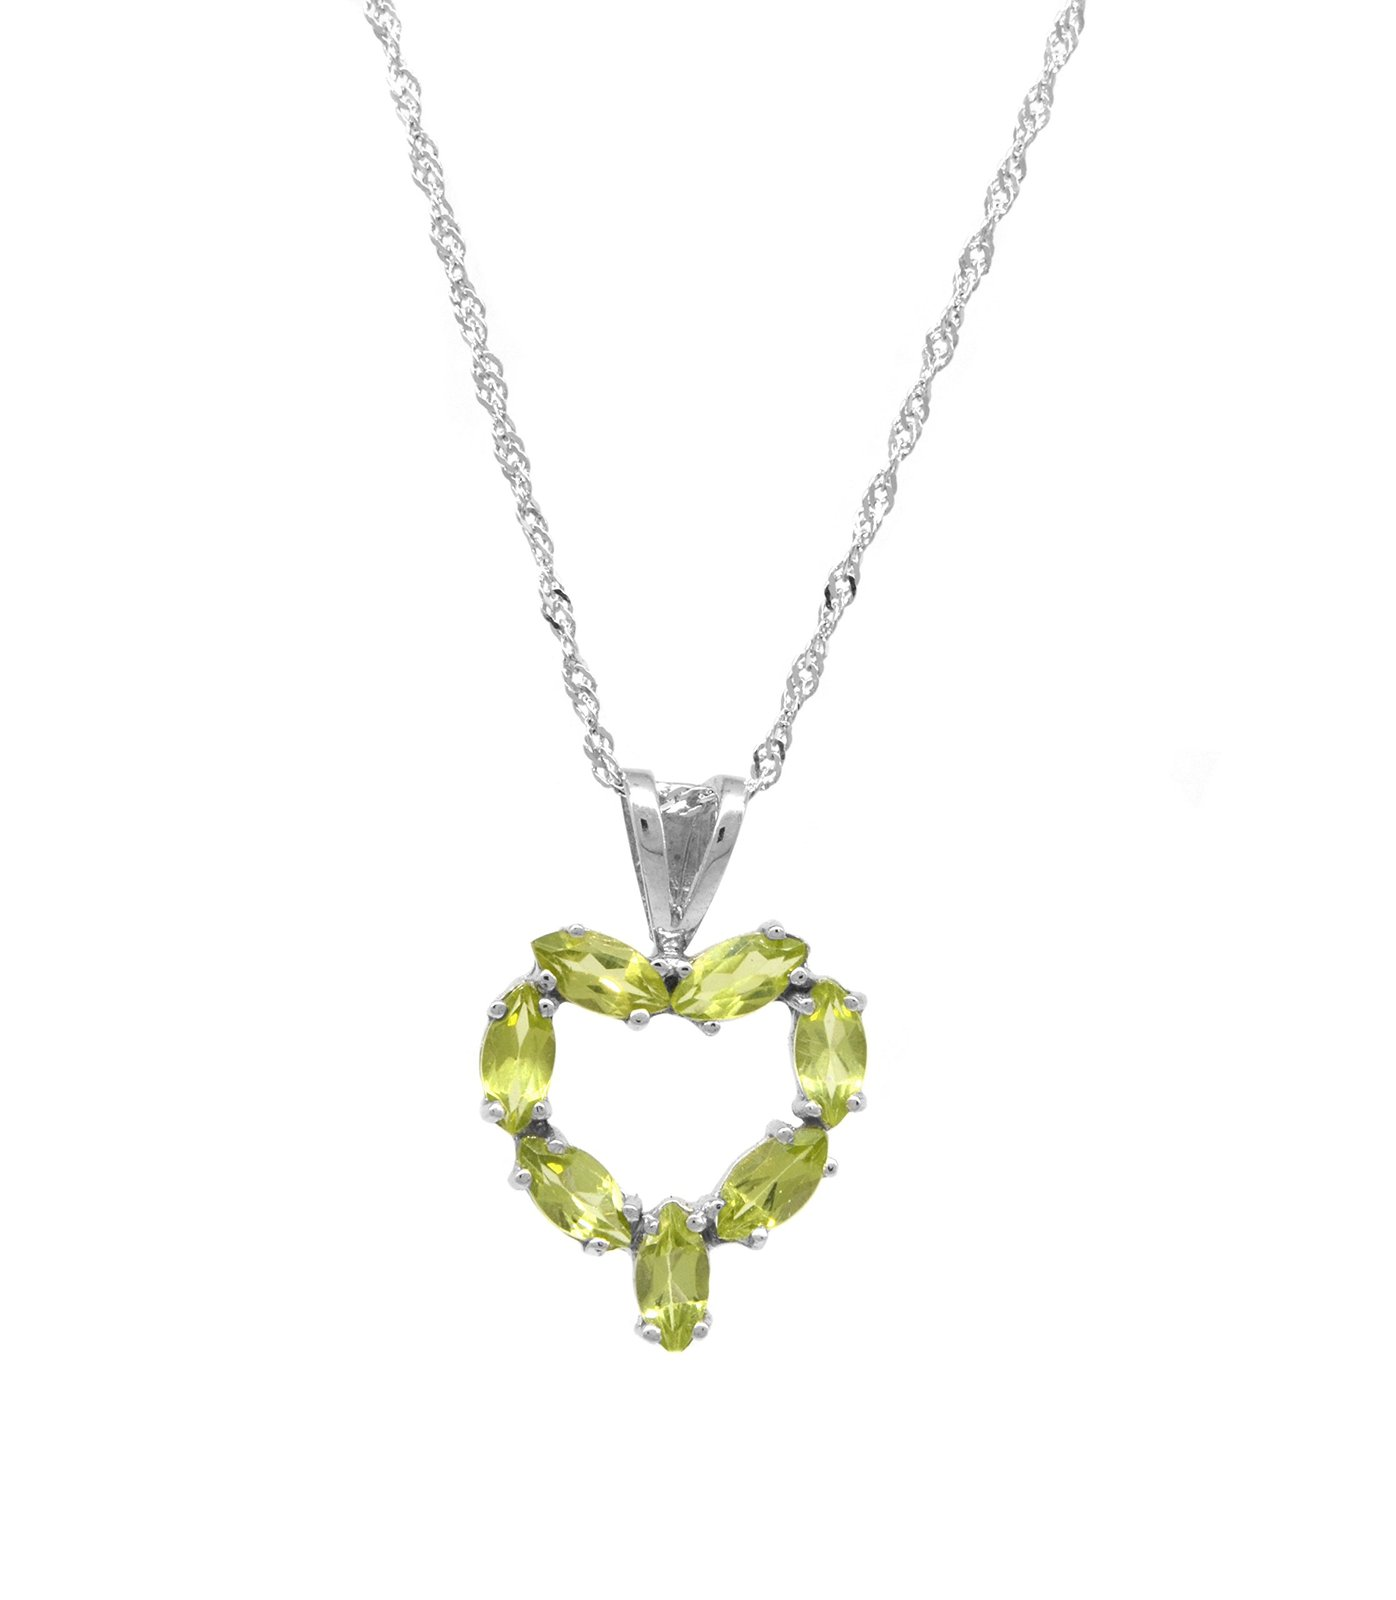 14 K White Gold Genuine Marquise Peridot Heart Pendant with Chain